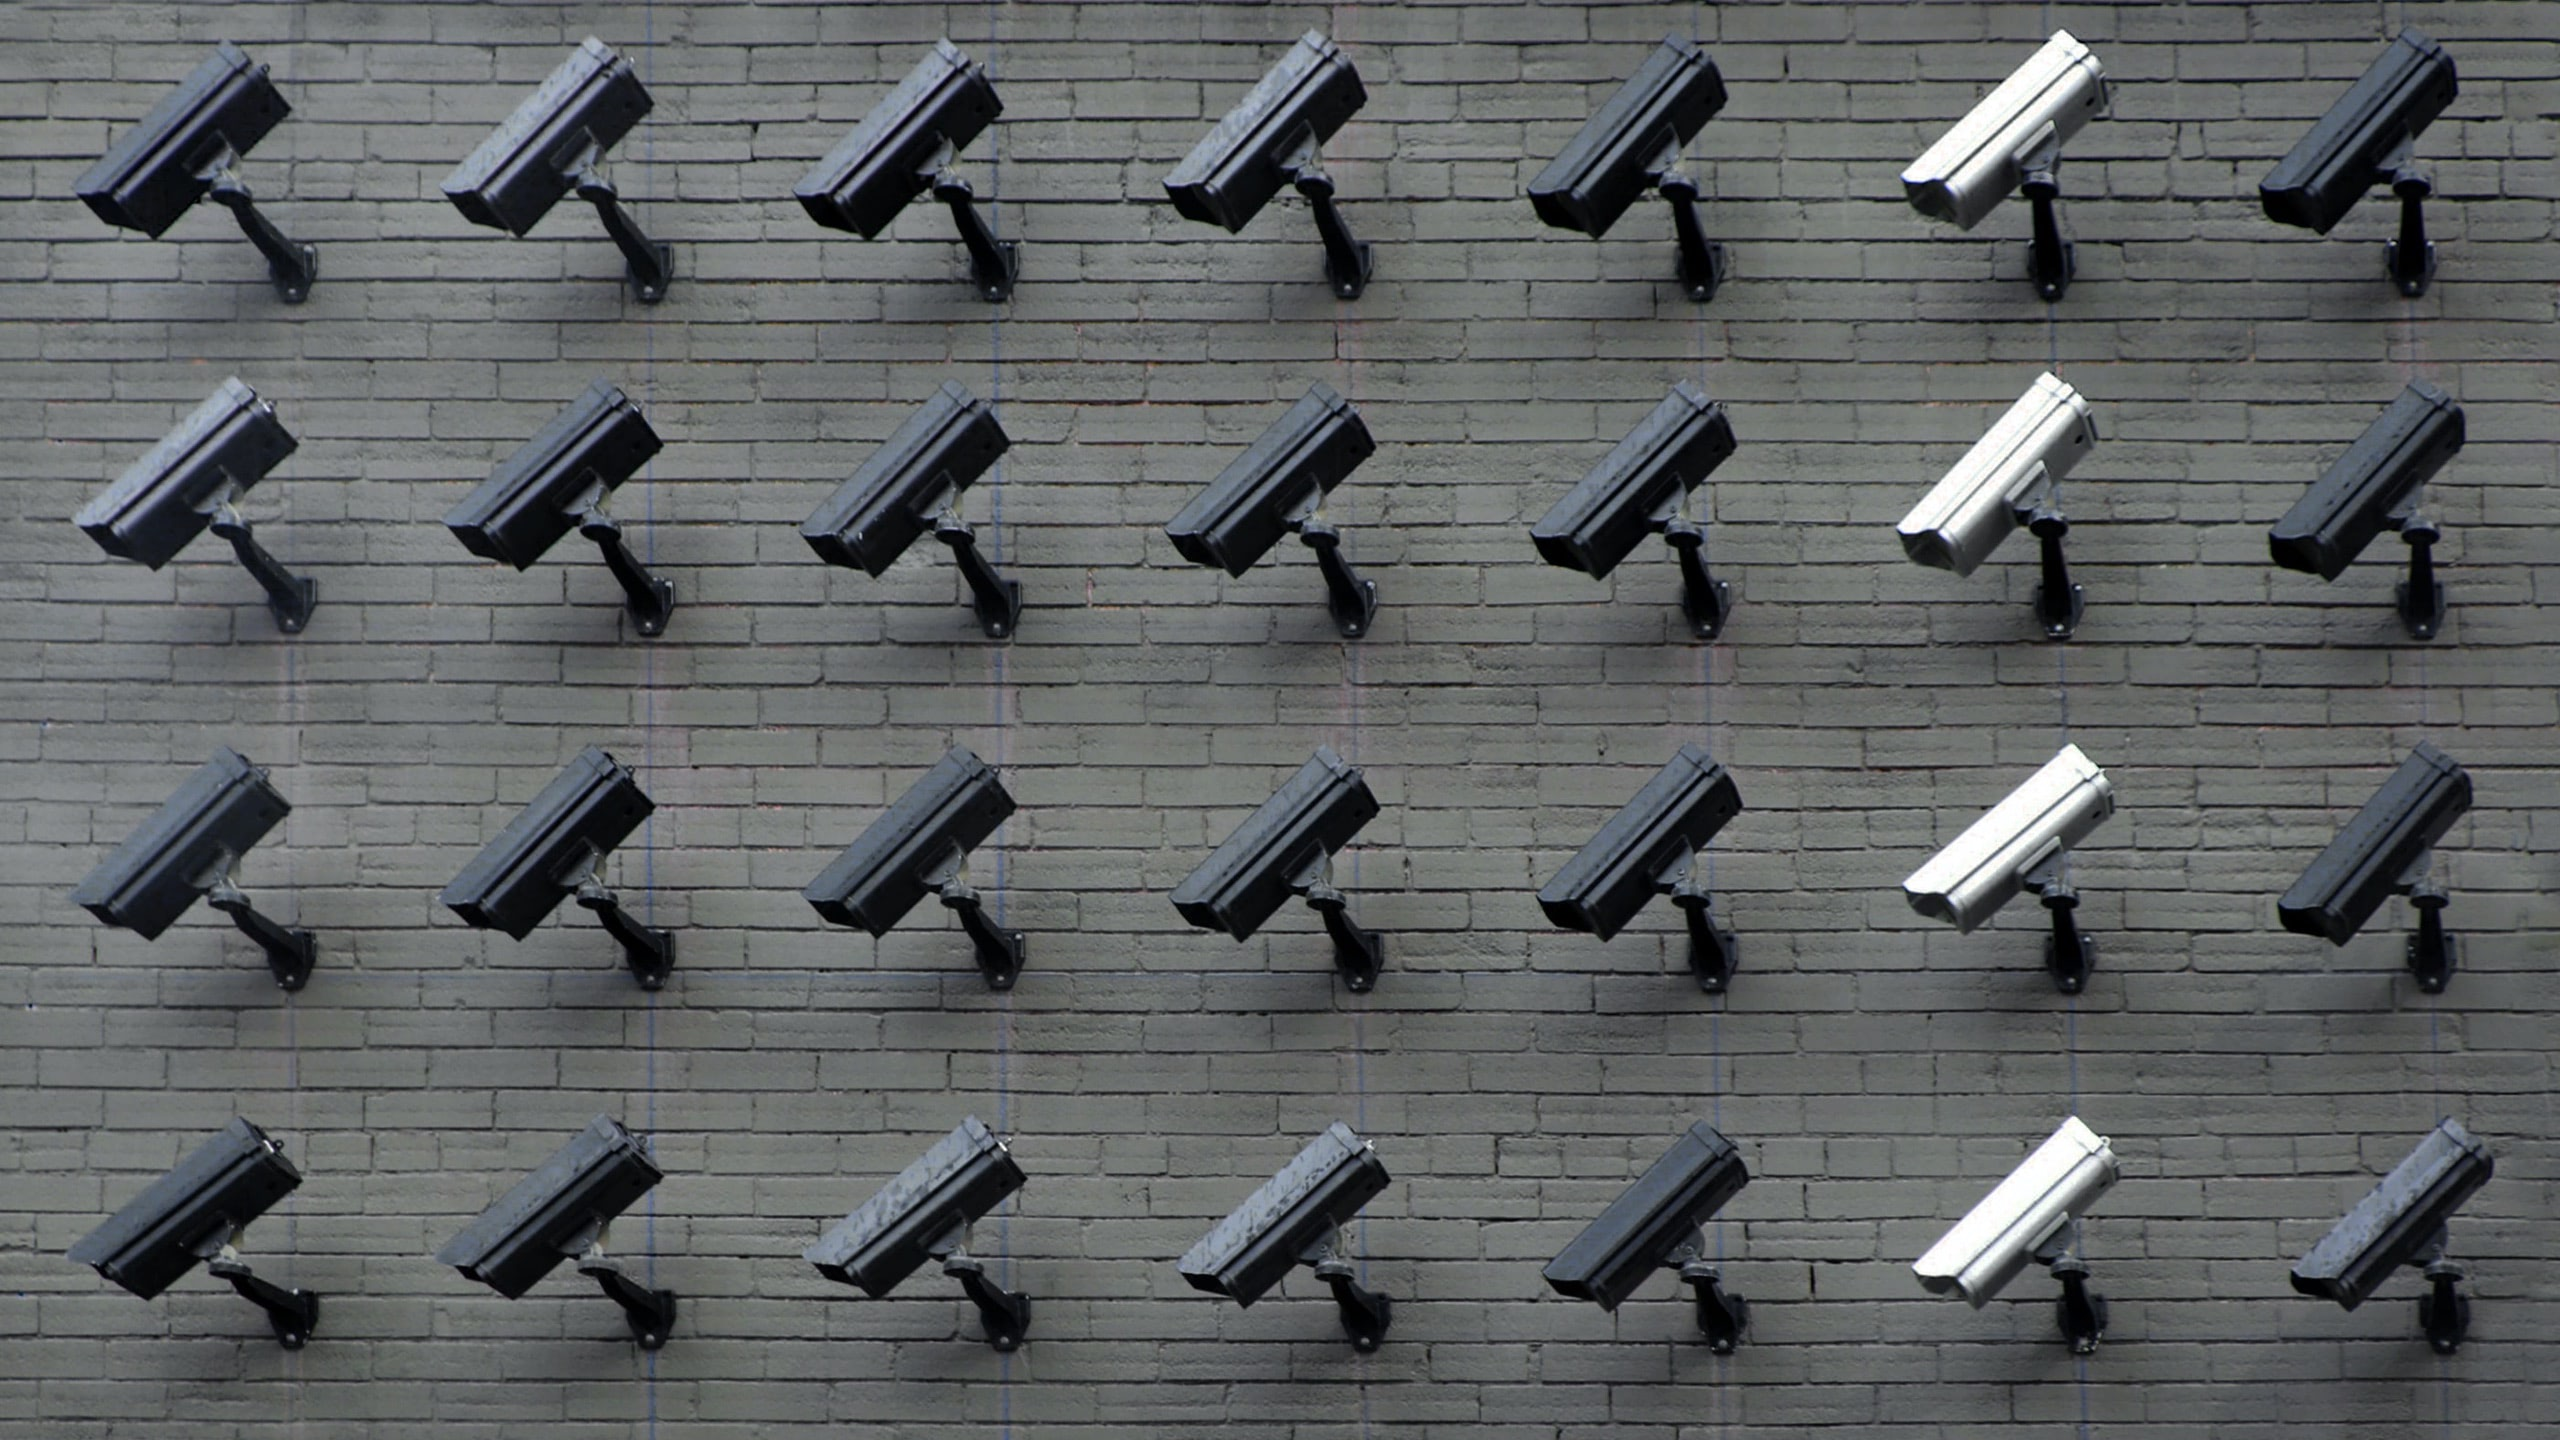 Group of security cameras on a wall